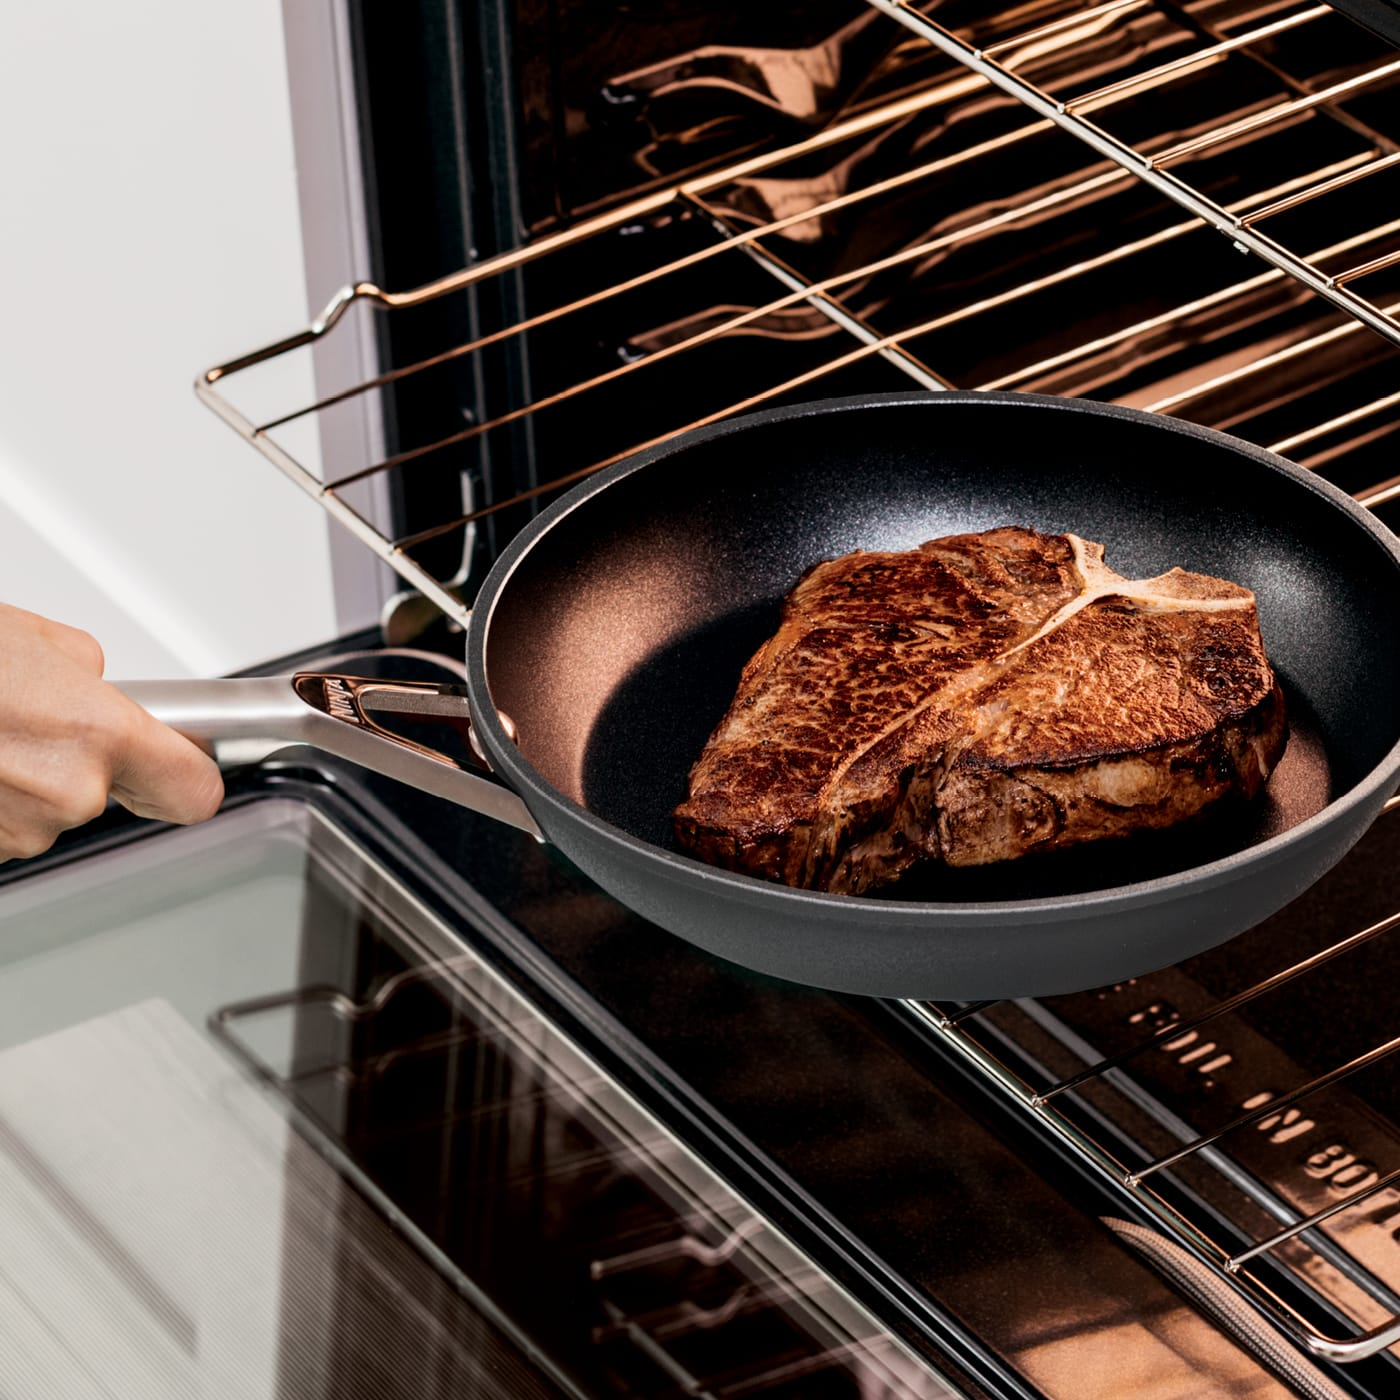 Stovetop to oven like cast iron